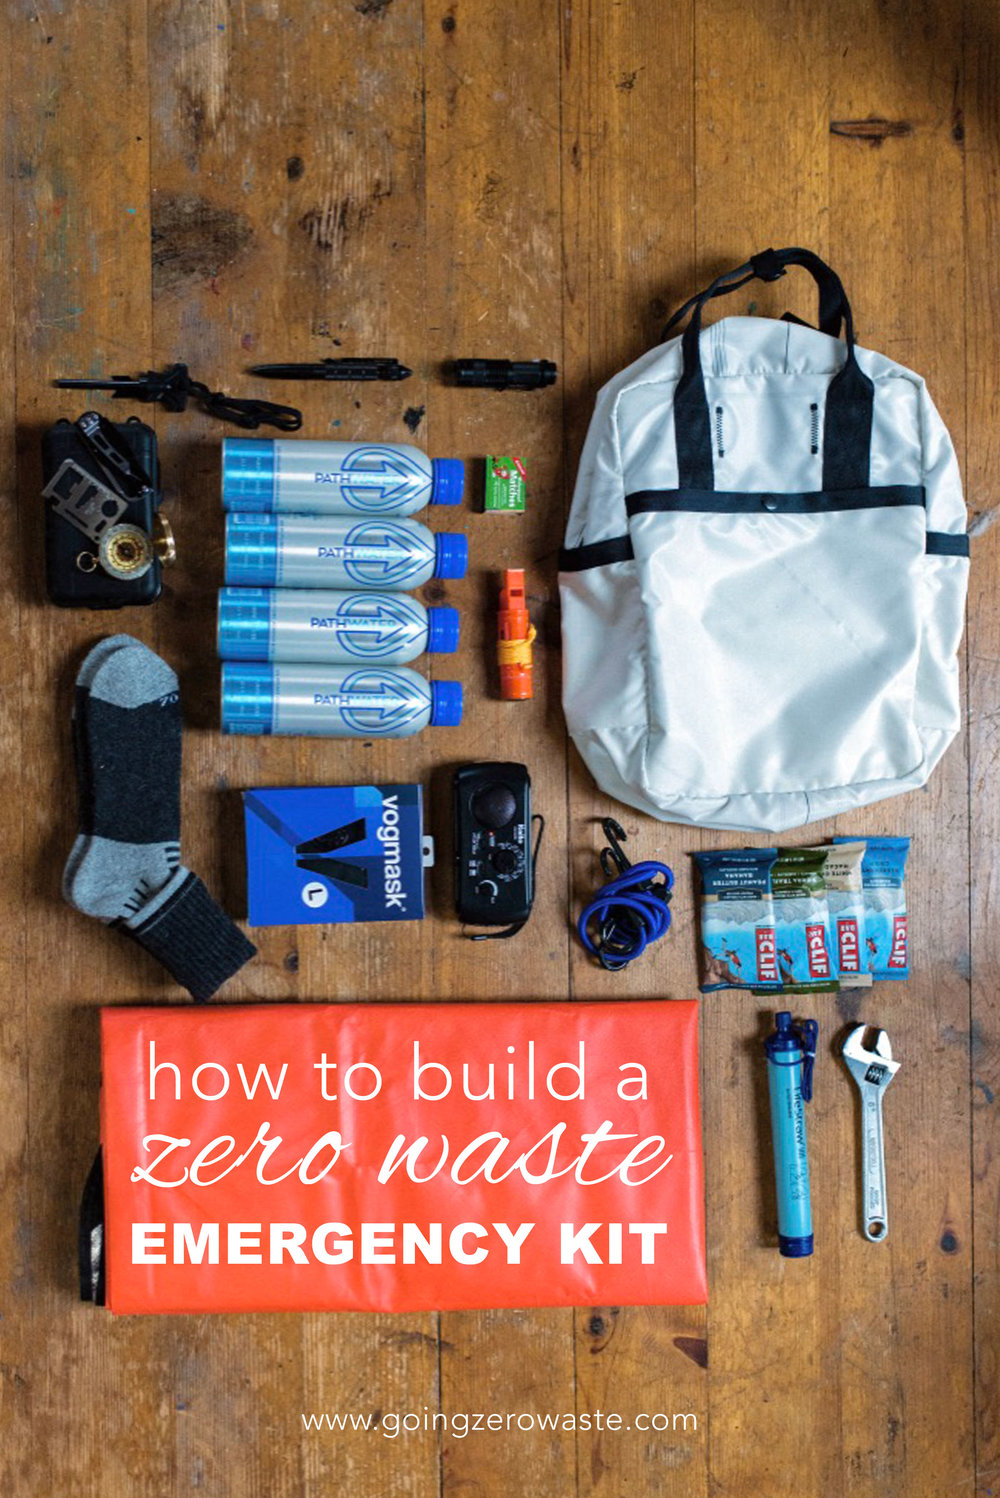 How to build a zero waste emergency kit from www.goingzerowaste.com #zerowaste #ecofriendly #emergencykit #emergencies #emergencypreparedness #beprepared #prep #gogreen